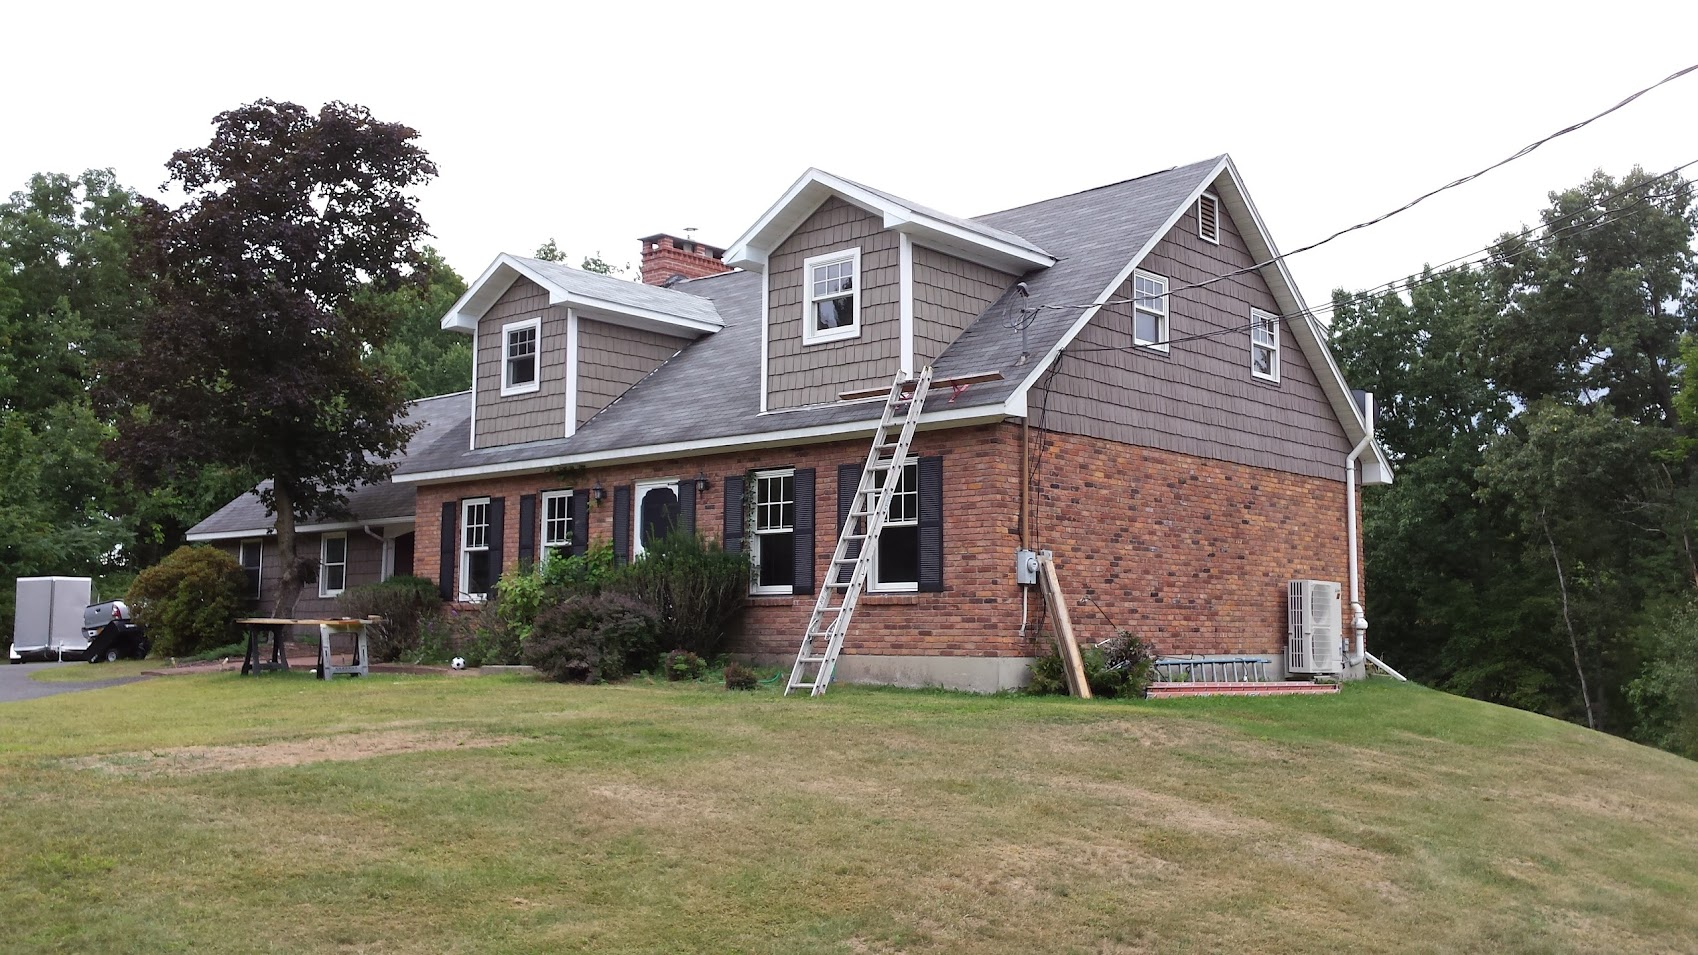 Dormers have siding